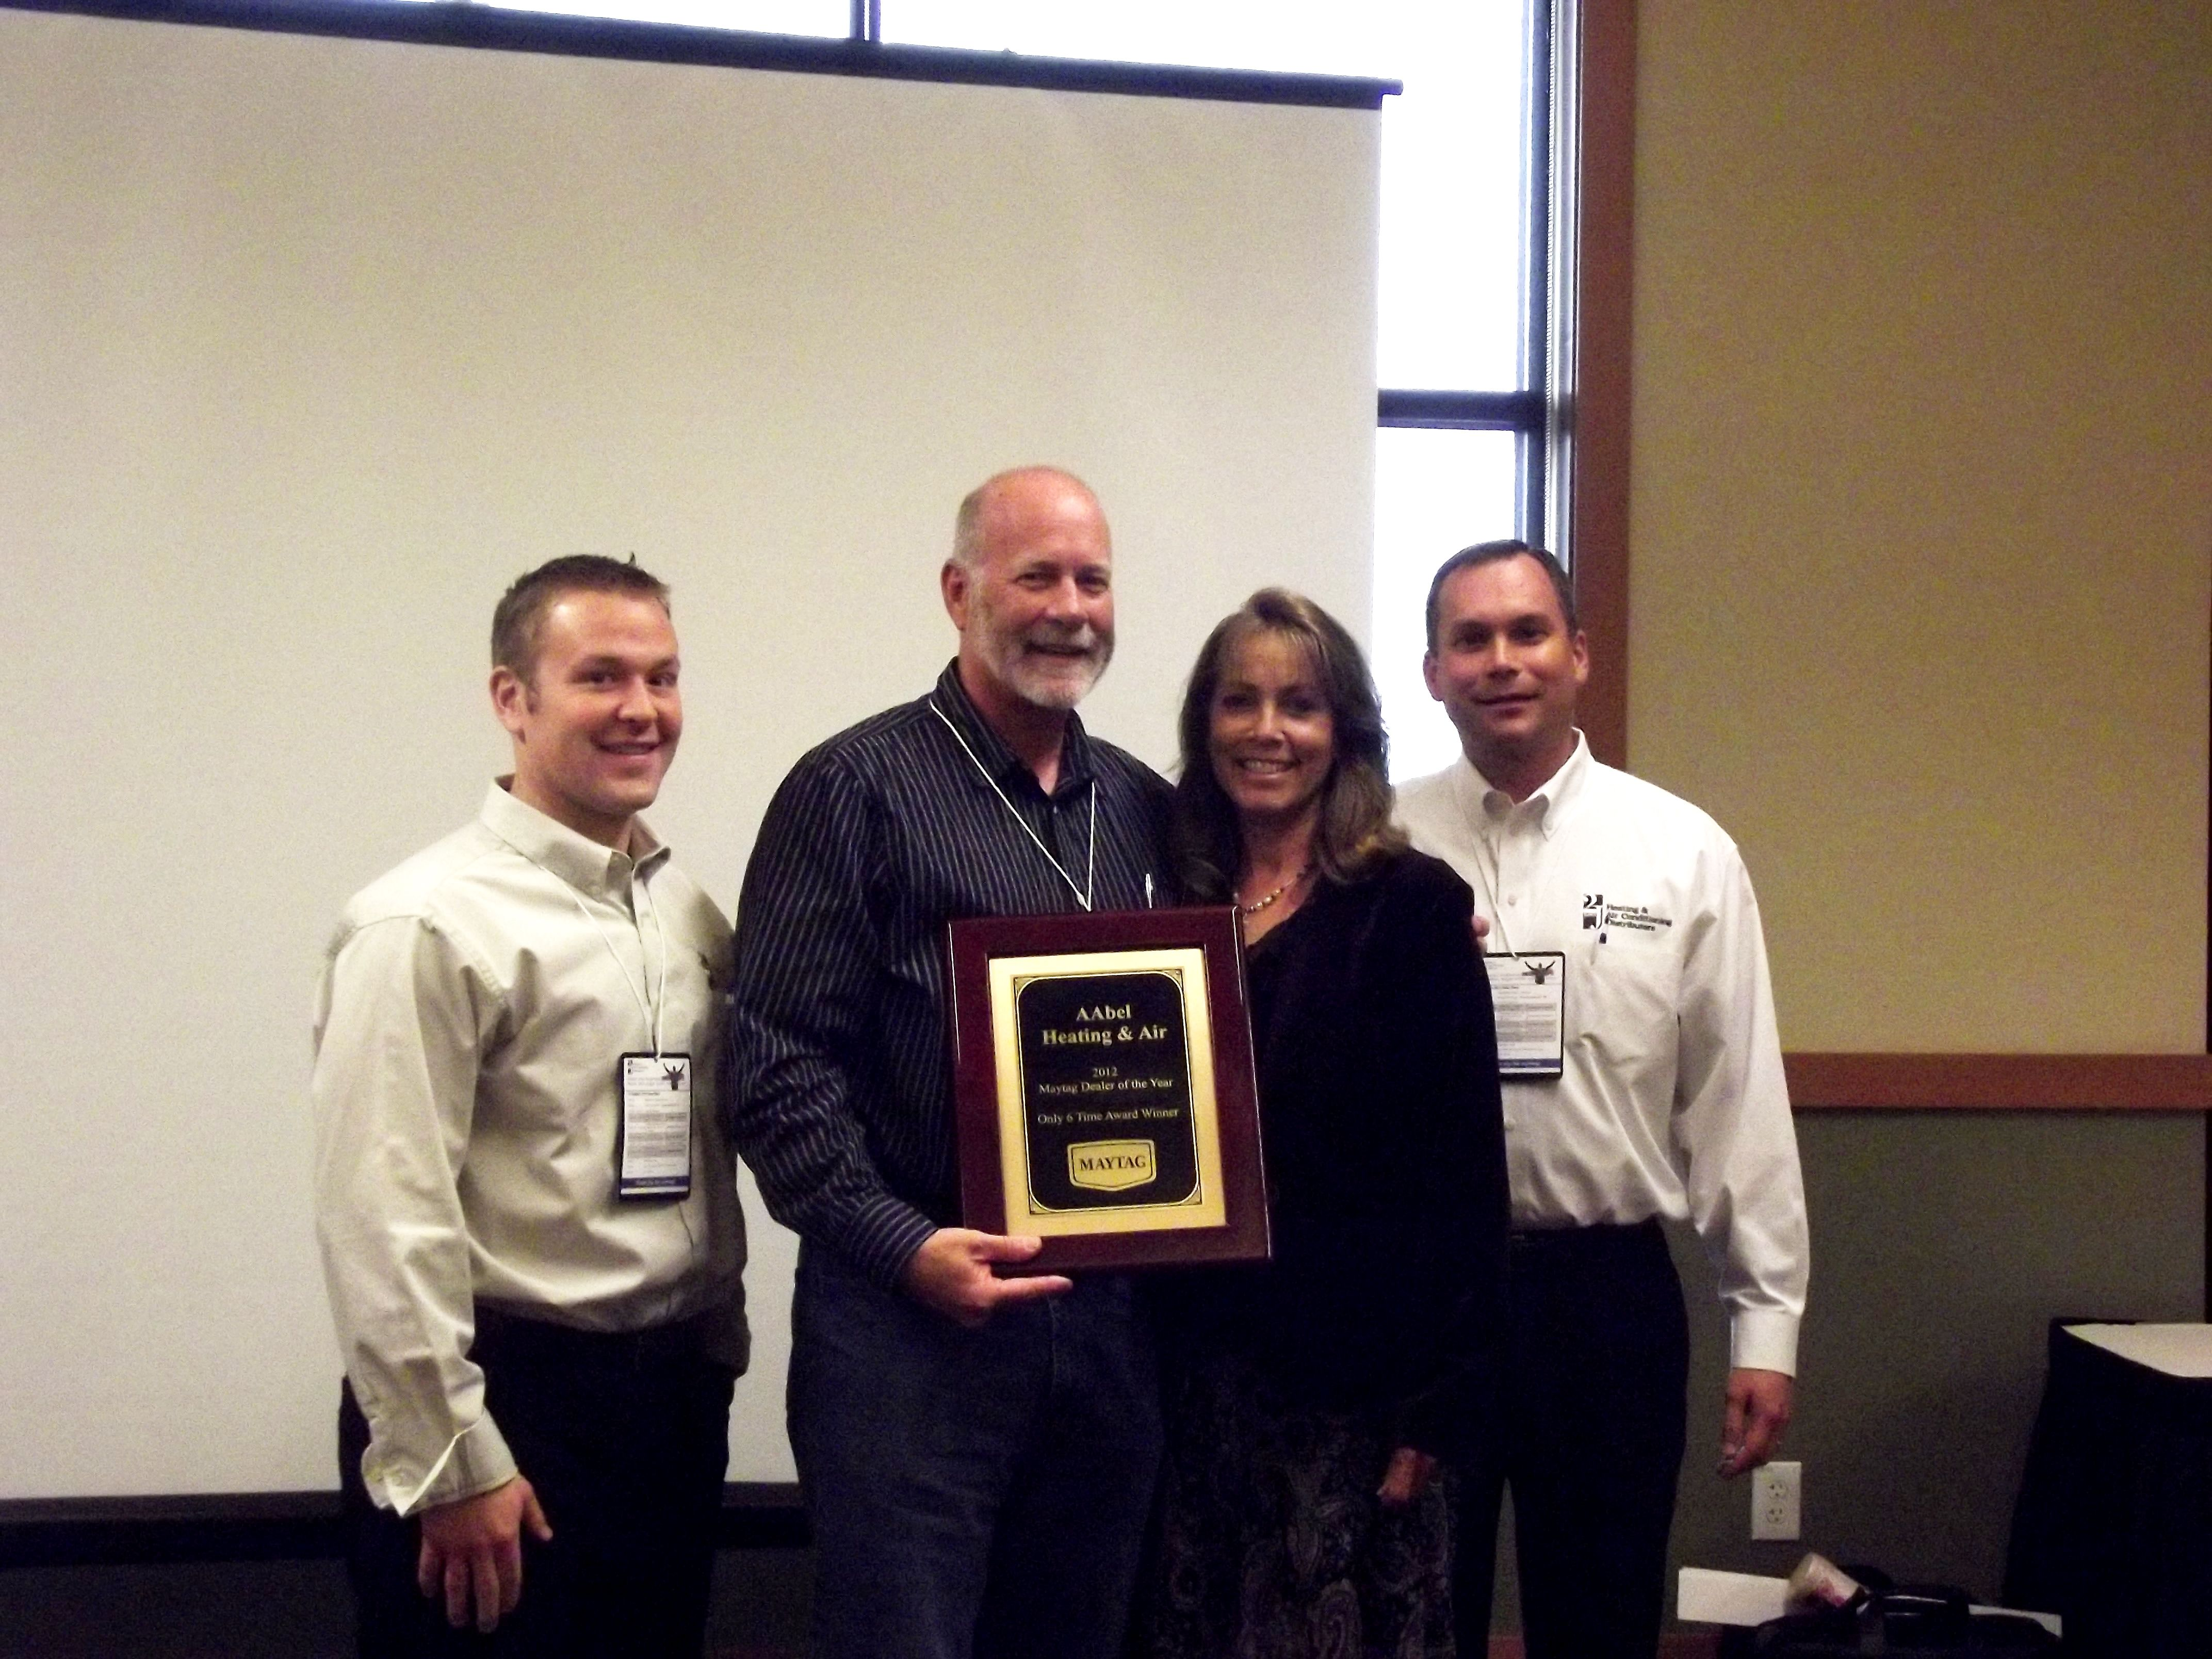 Dayton Branch Maytag Dealer of the Year Aabel Heating